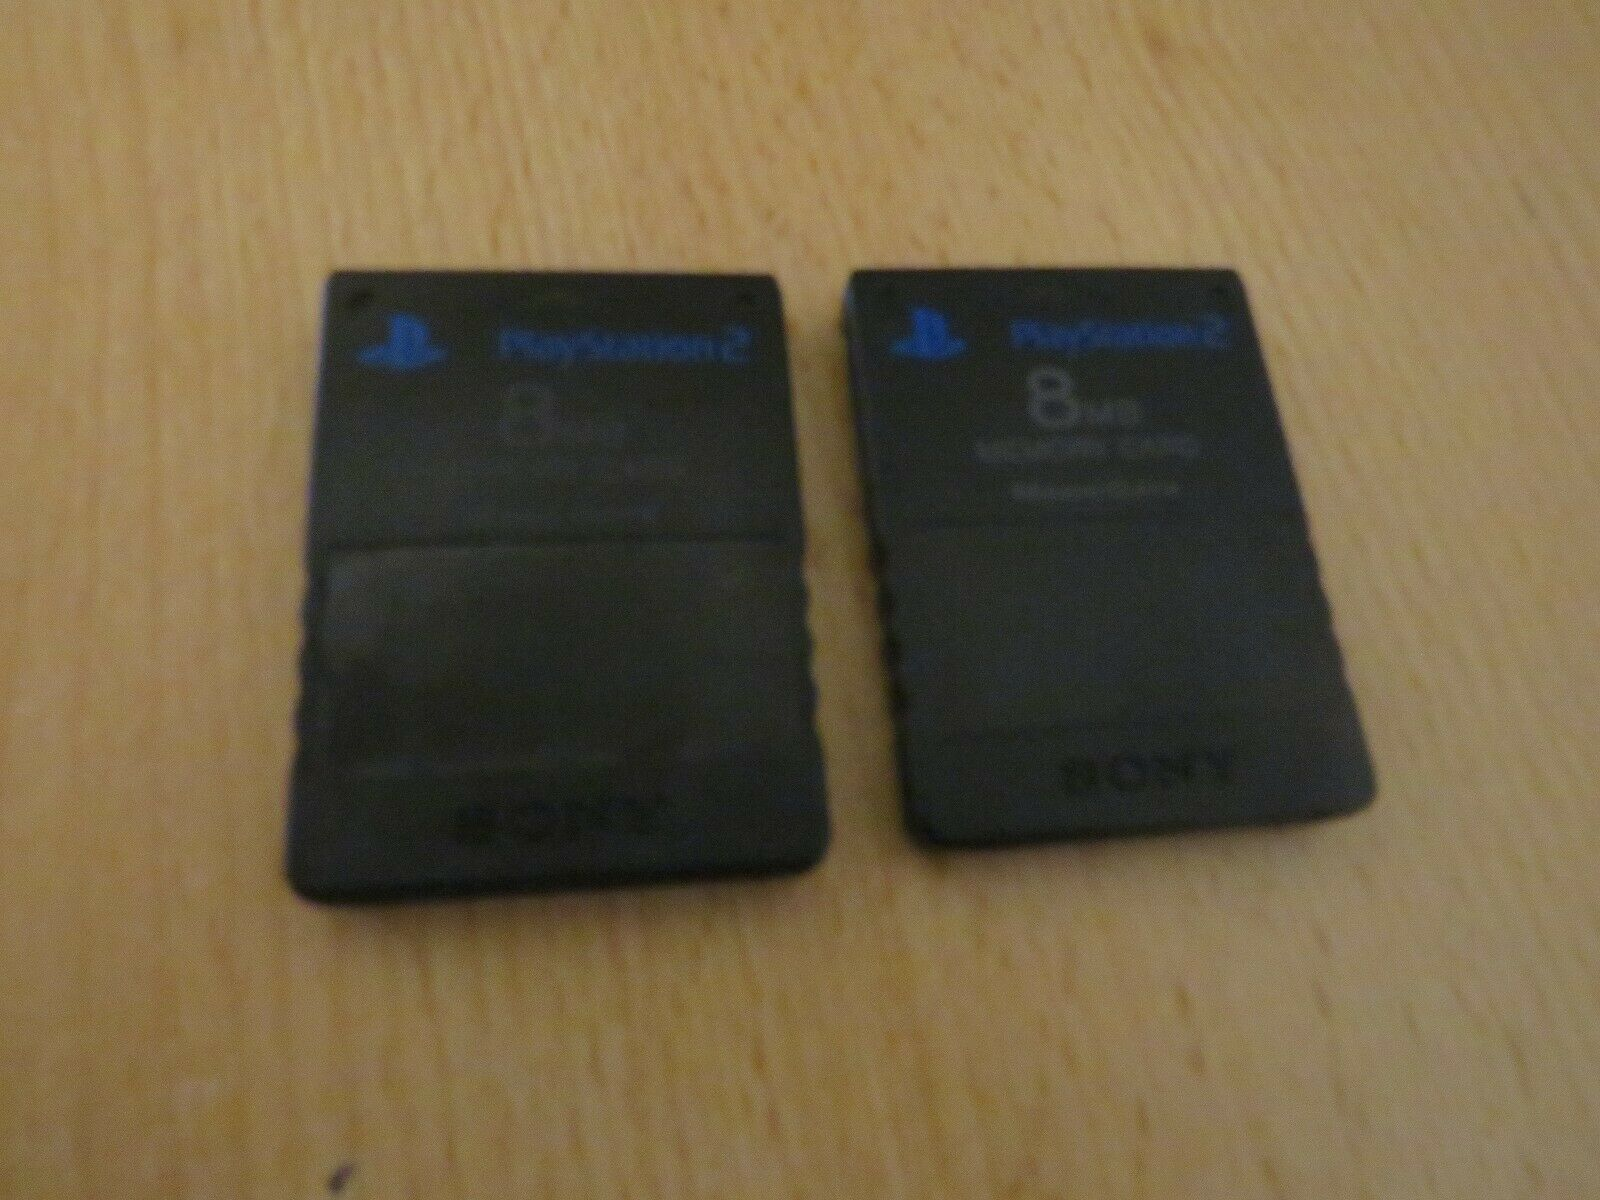 Official 8mb ps2 memory card x2 playstation 2